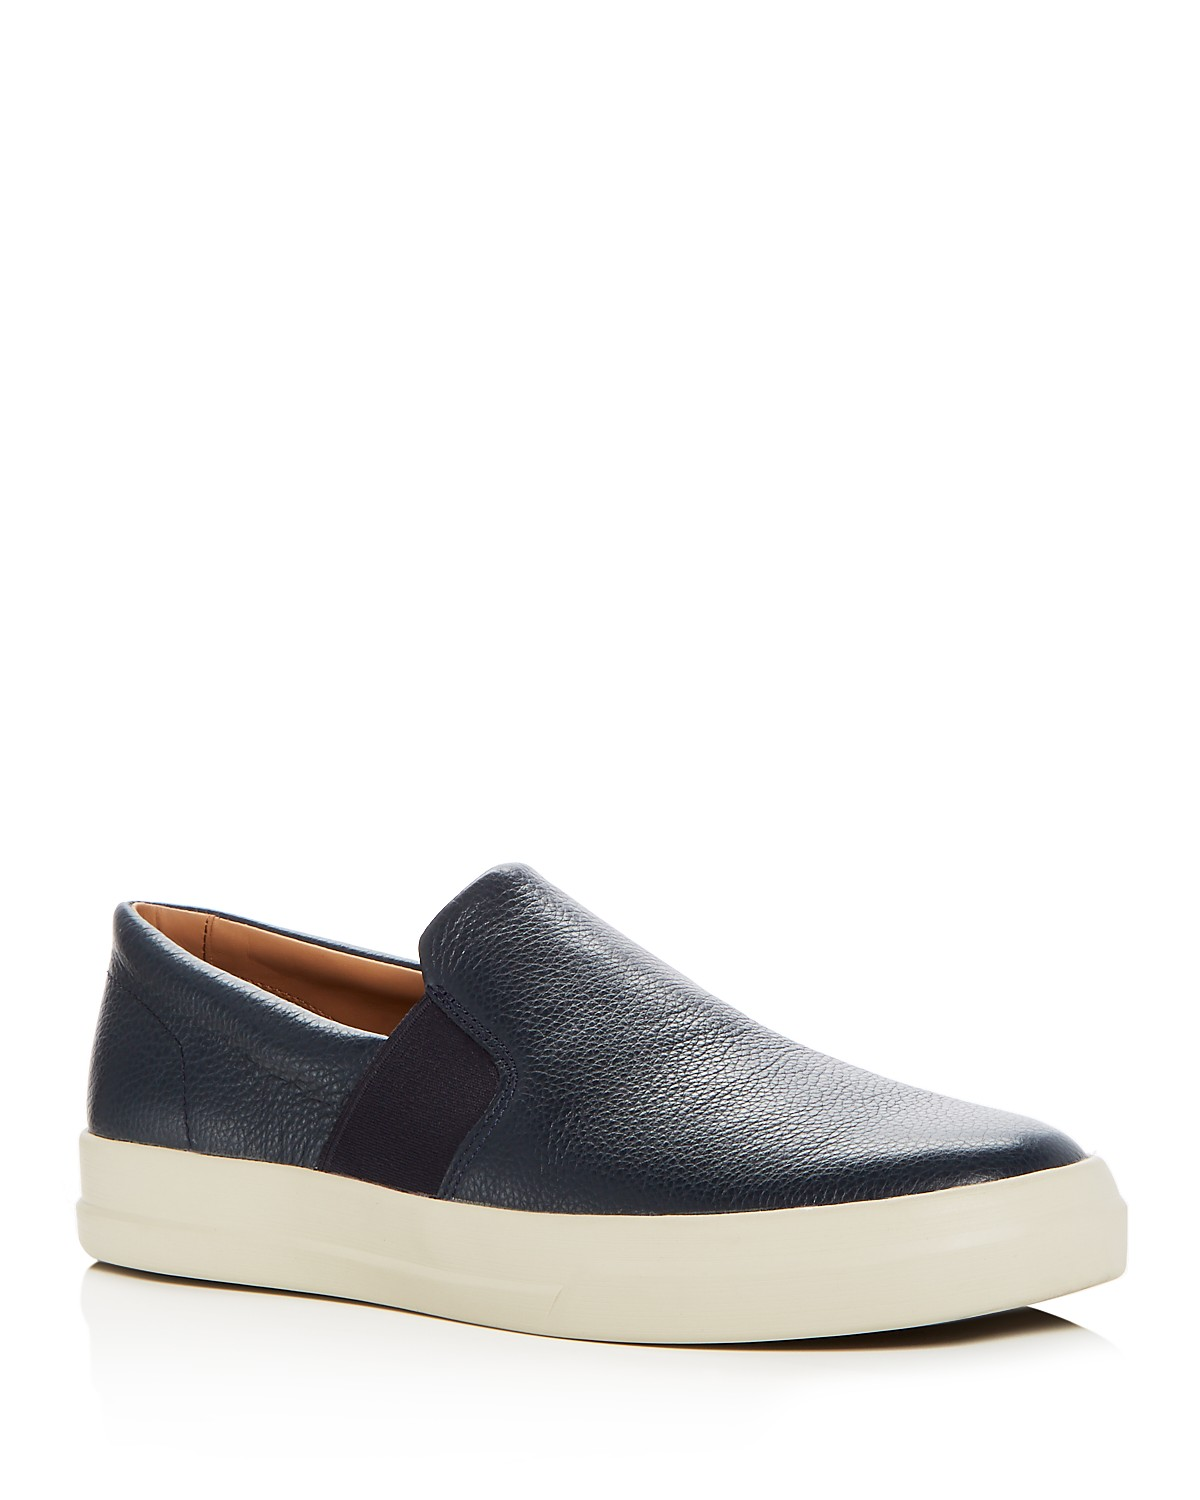 Vince Men's Caleb Leather Slip-On Sneakers UV18P7MPt